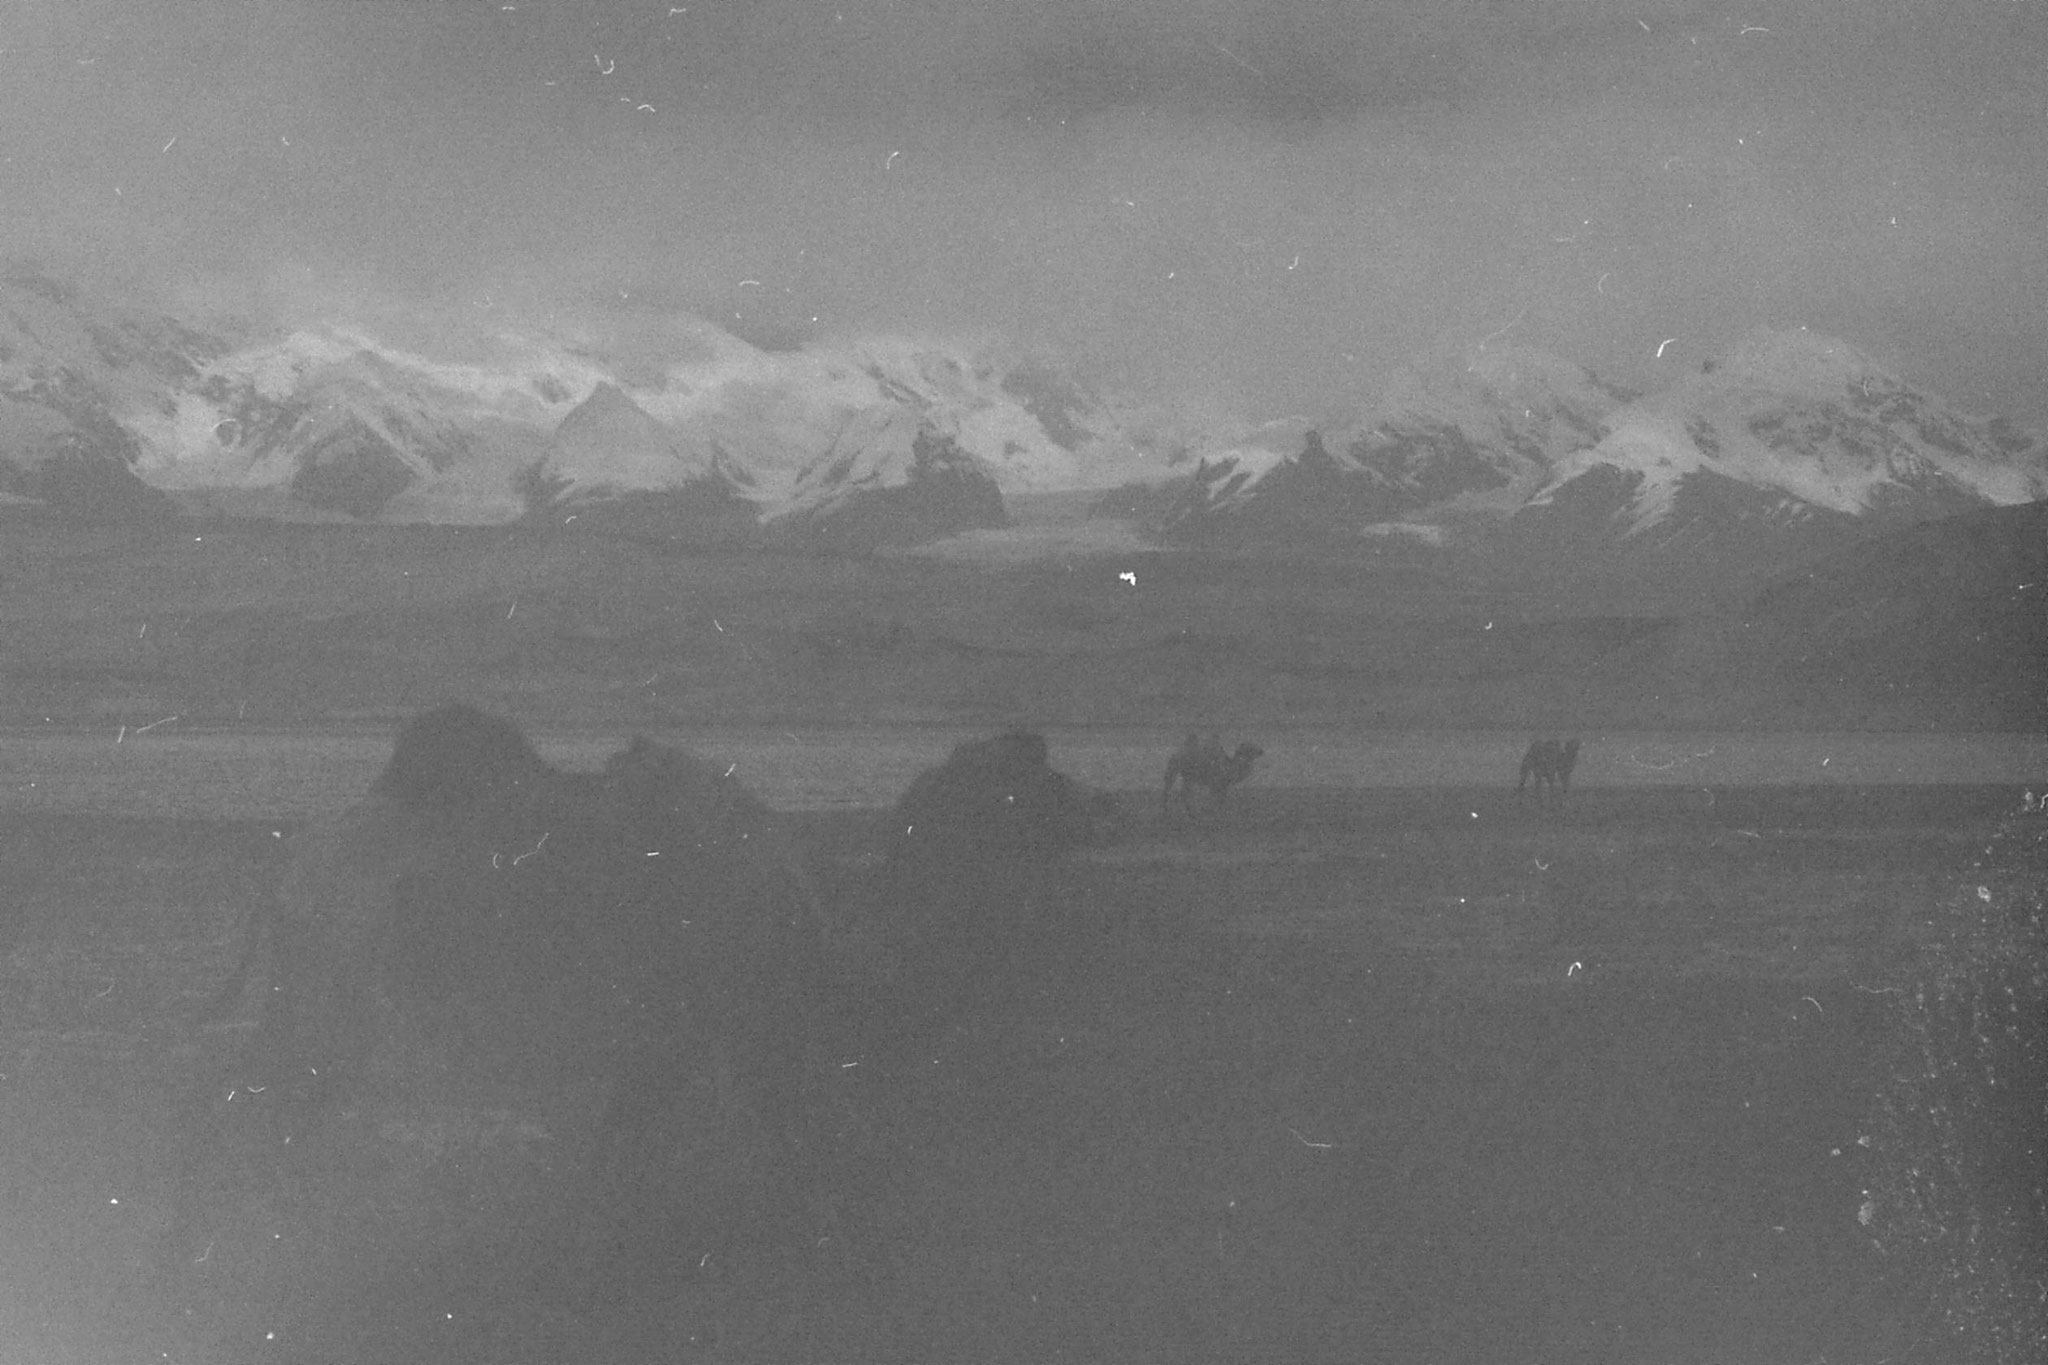 10/9/1989: 8: Lake Karakul